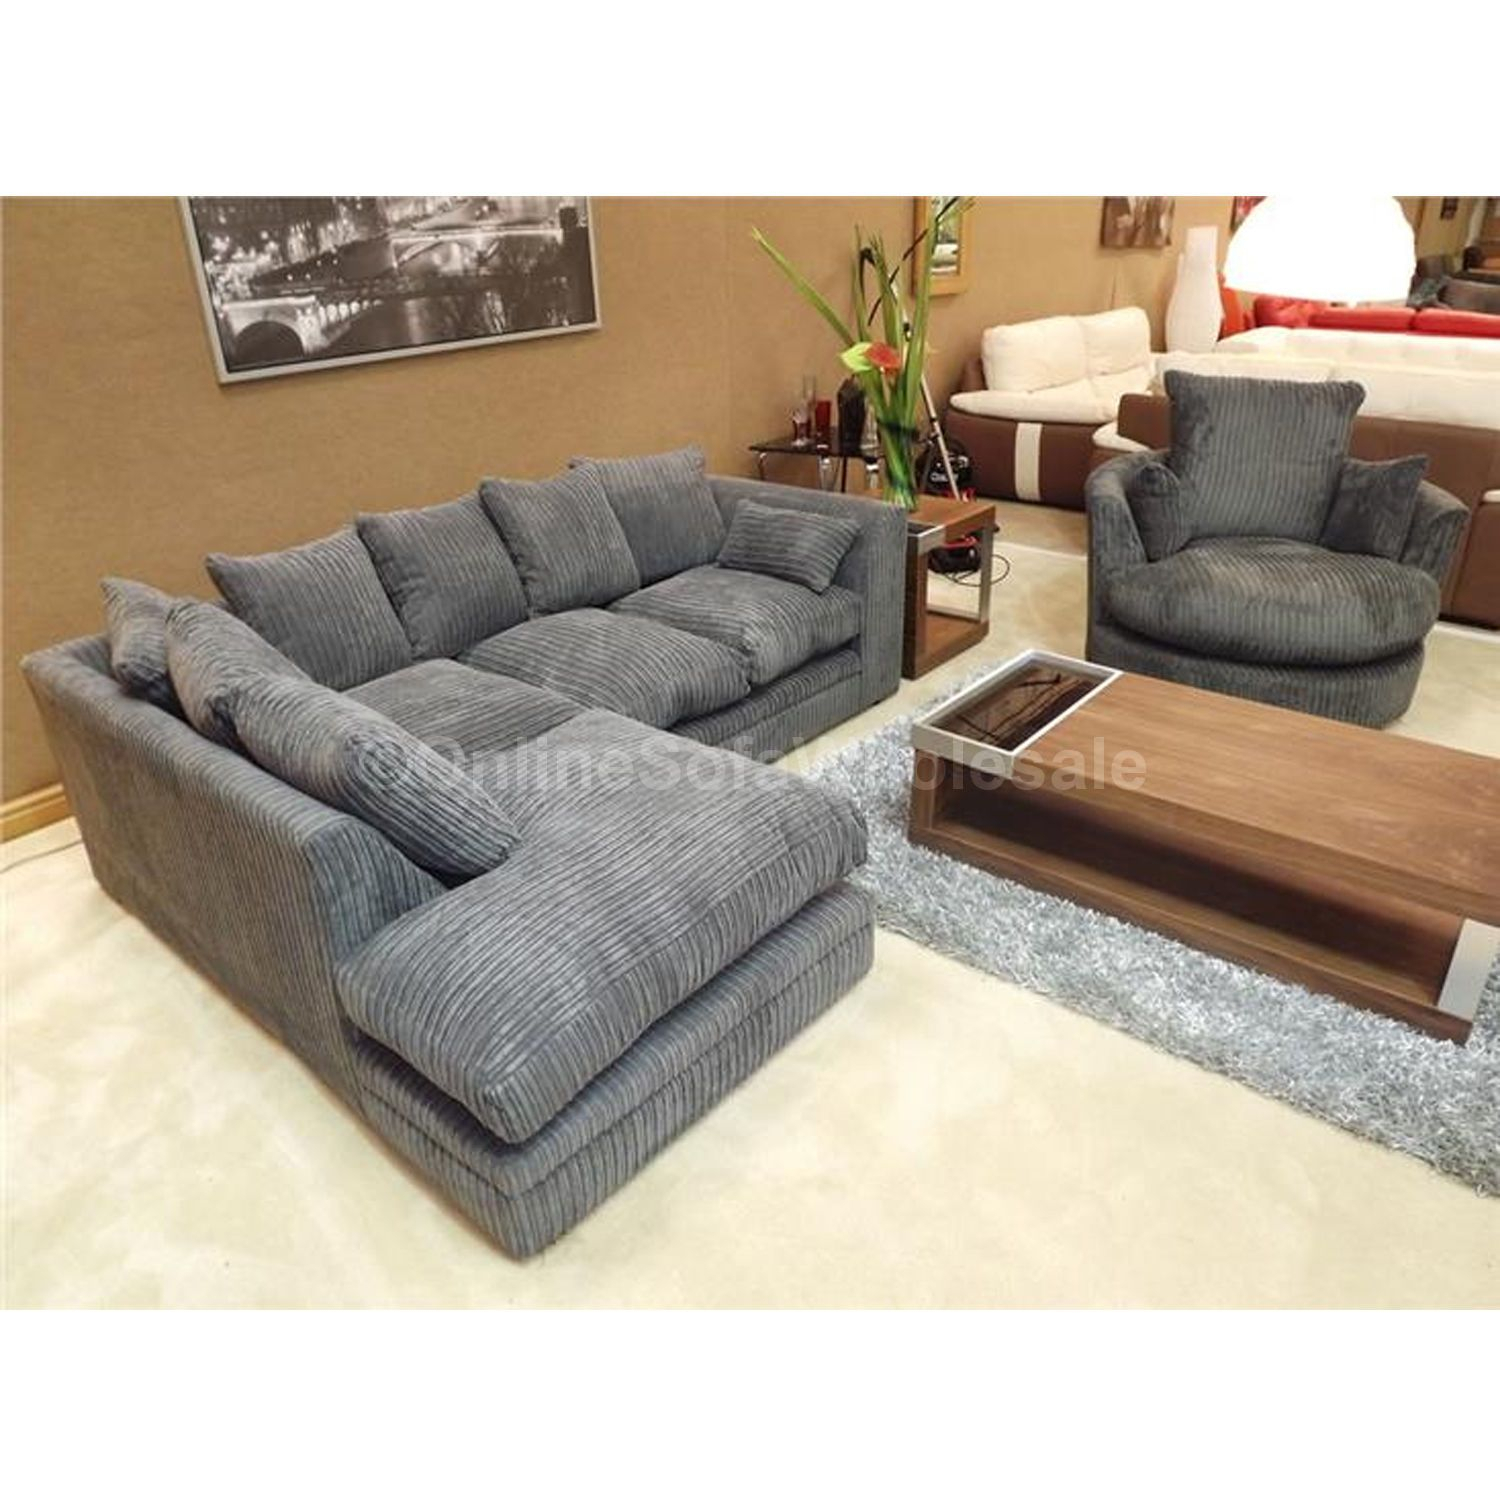 Details About Dylan Corner Sofa Left Hand Plus Swivel Chair – All With Regard To Dark Grey Swivel Chairs (Photo 19 of 20)